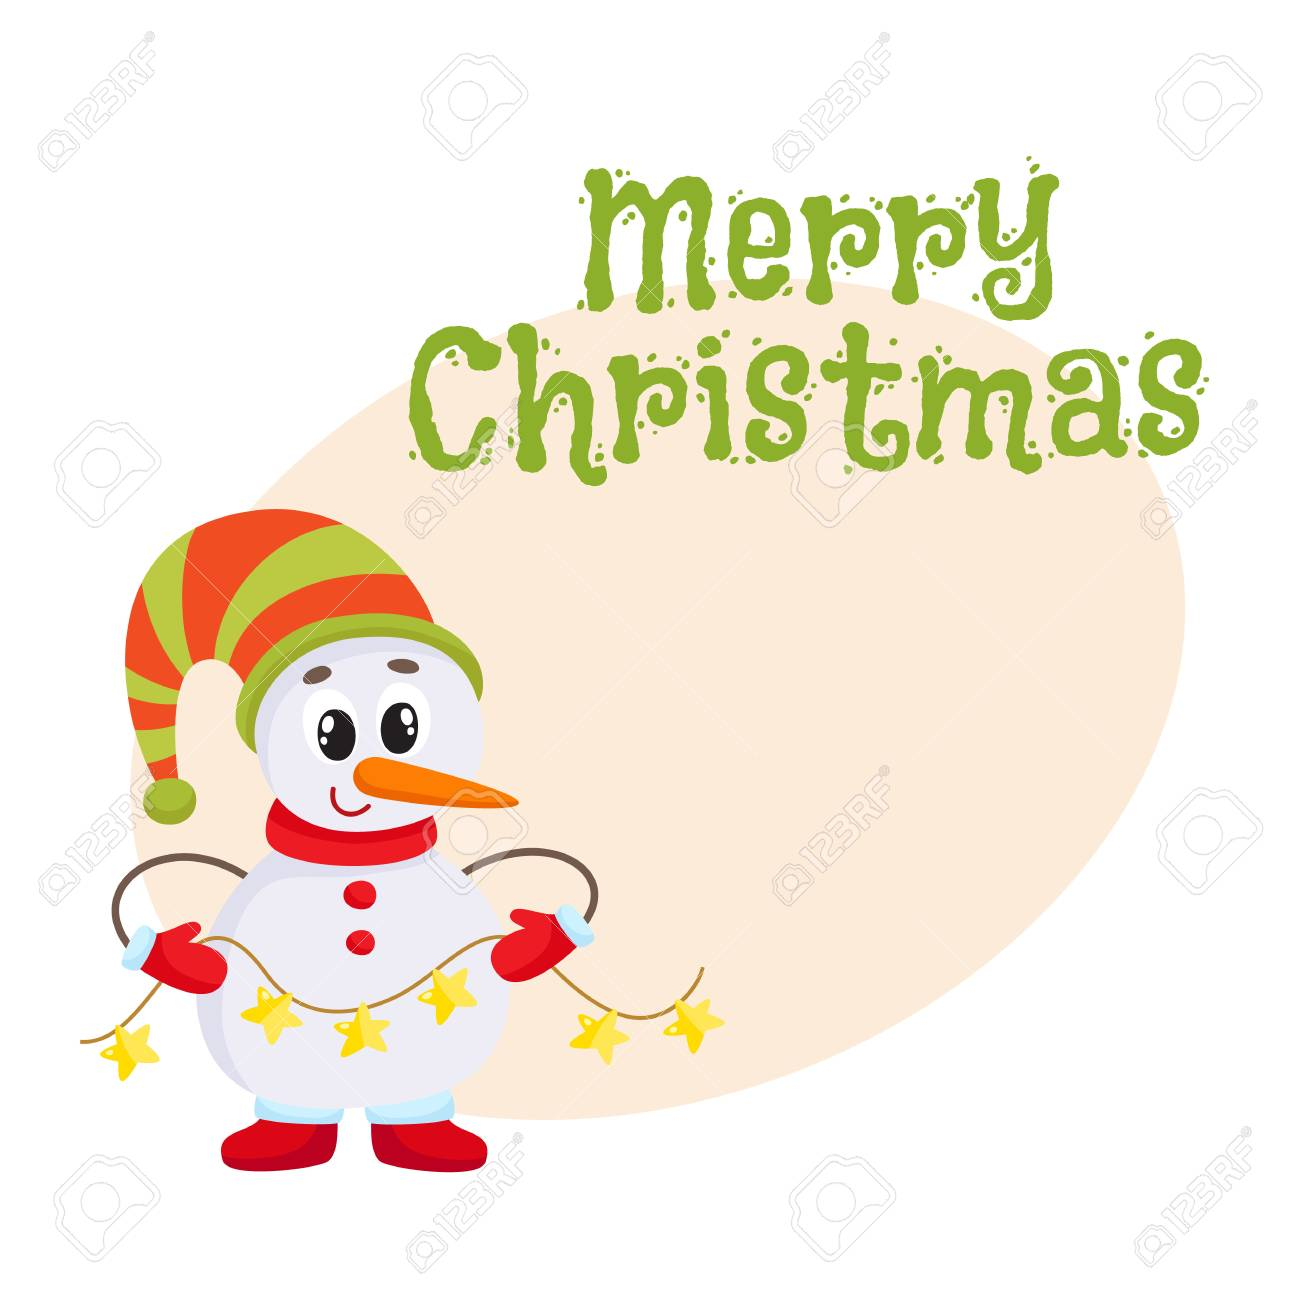 Merry Christmas Greeting Card Template With Cute And Funny Little